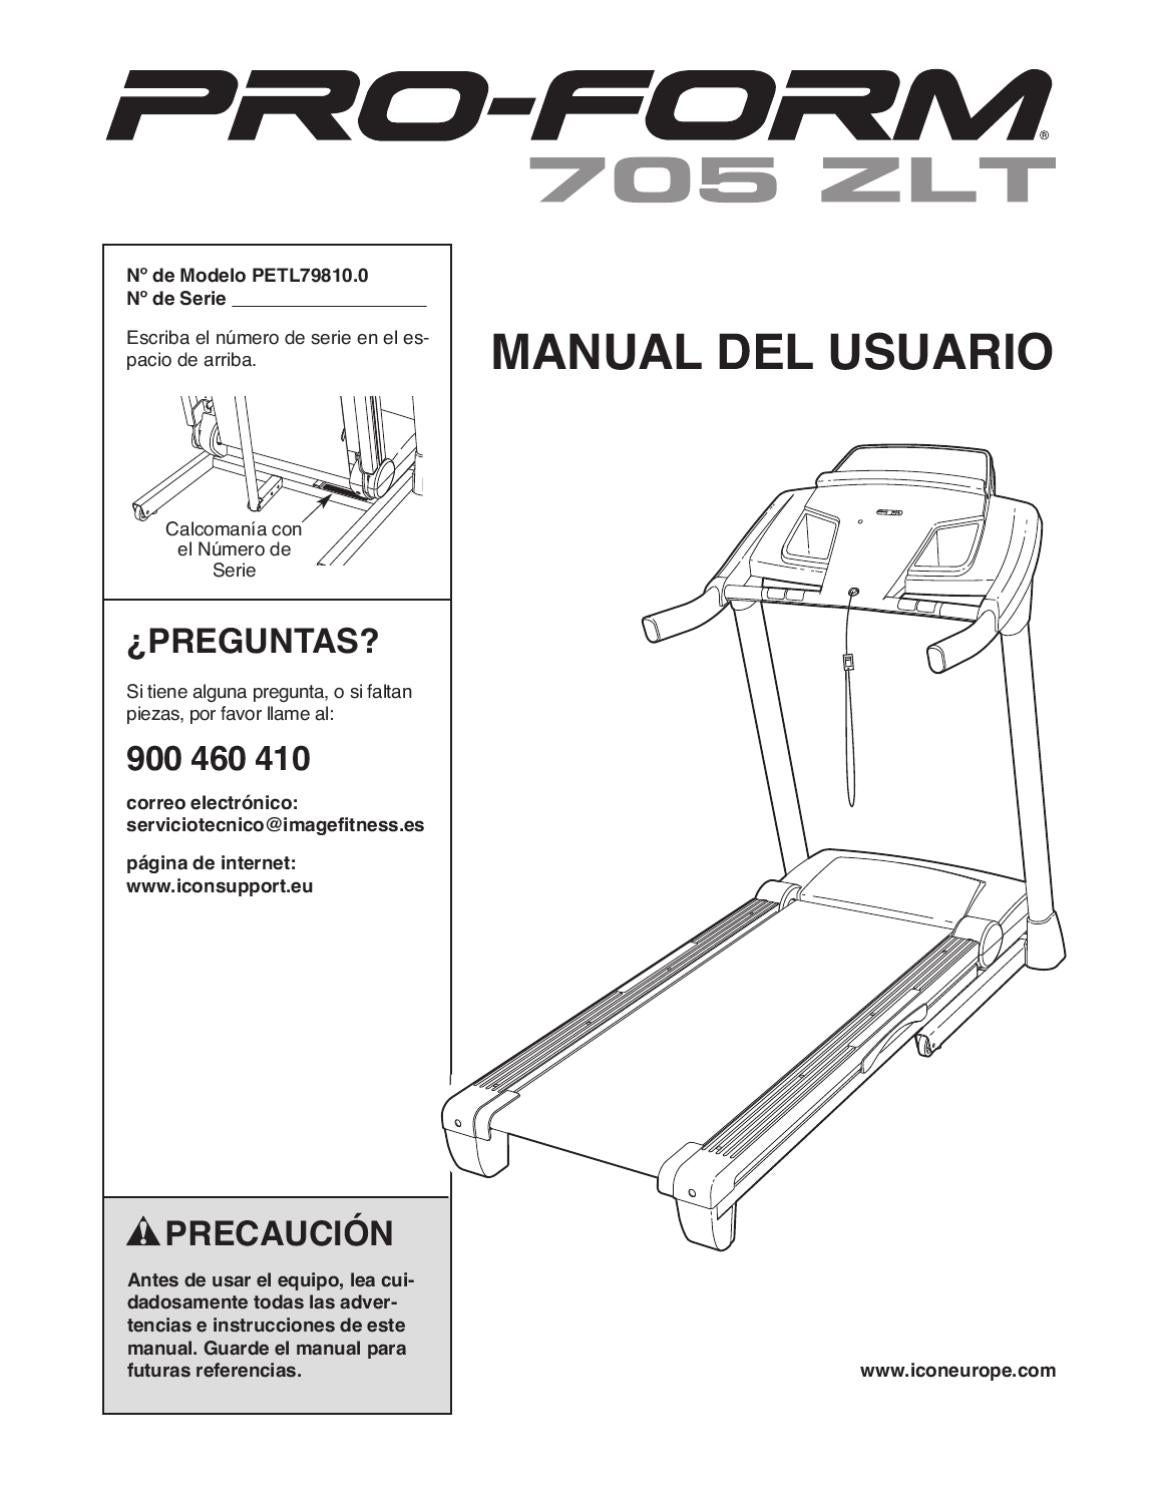 Manual Instrucciones Cinta de correr Proform 705 by